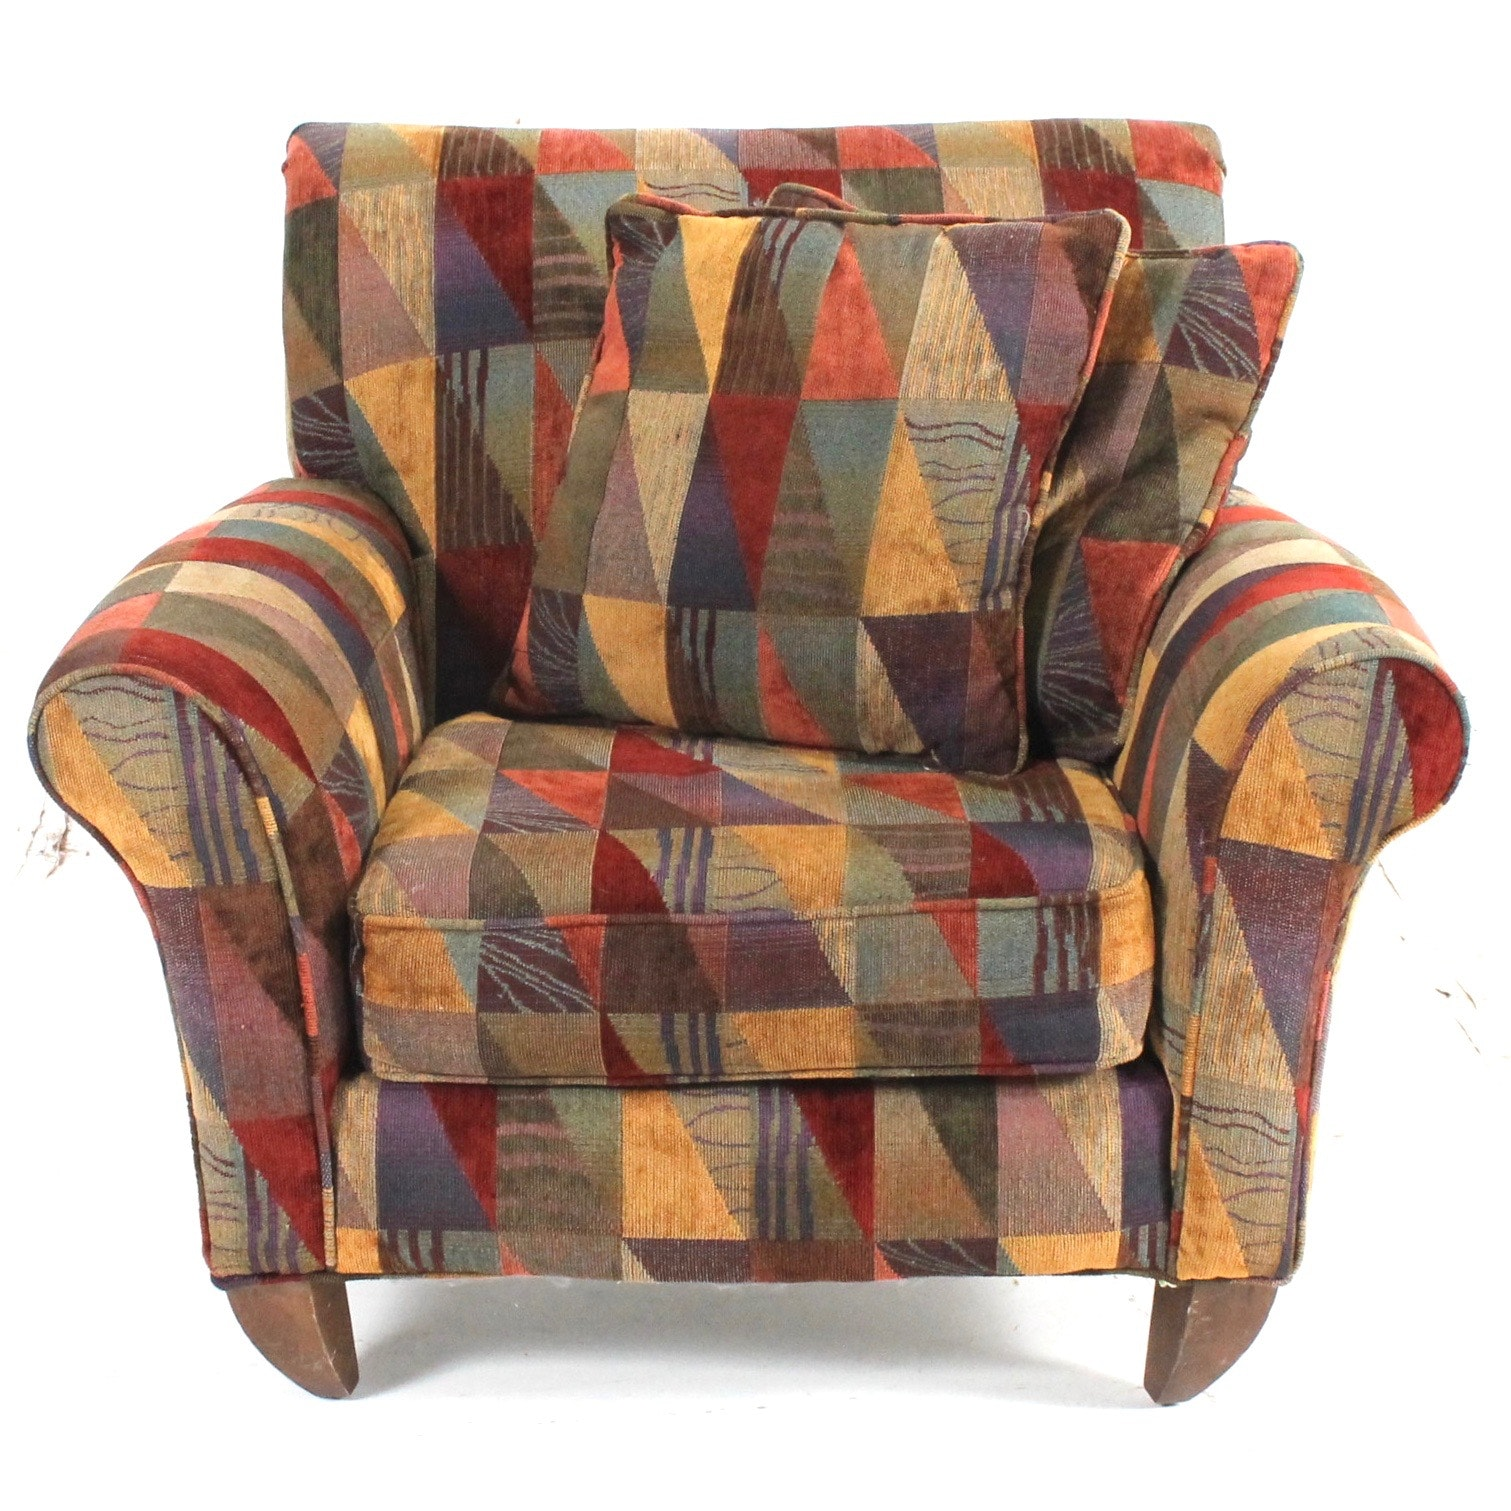 Contemporary Upholstered Arm Chair by Alan White